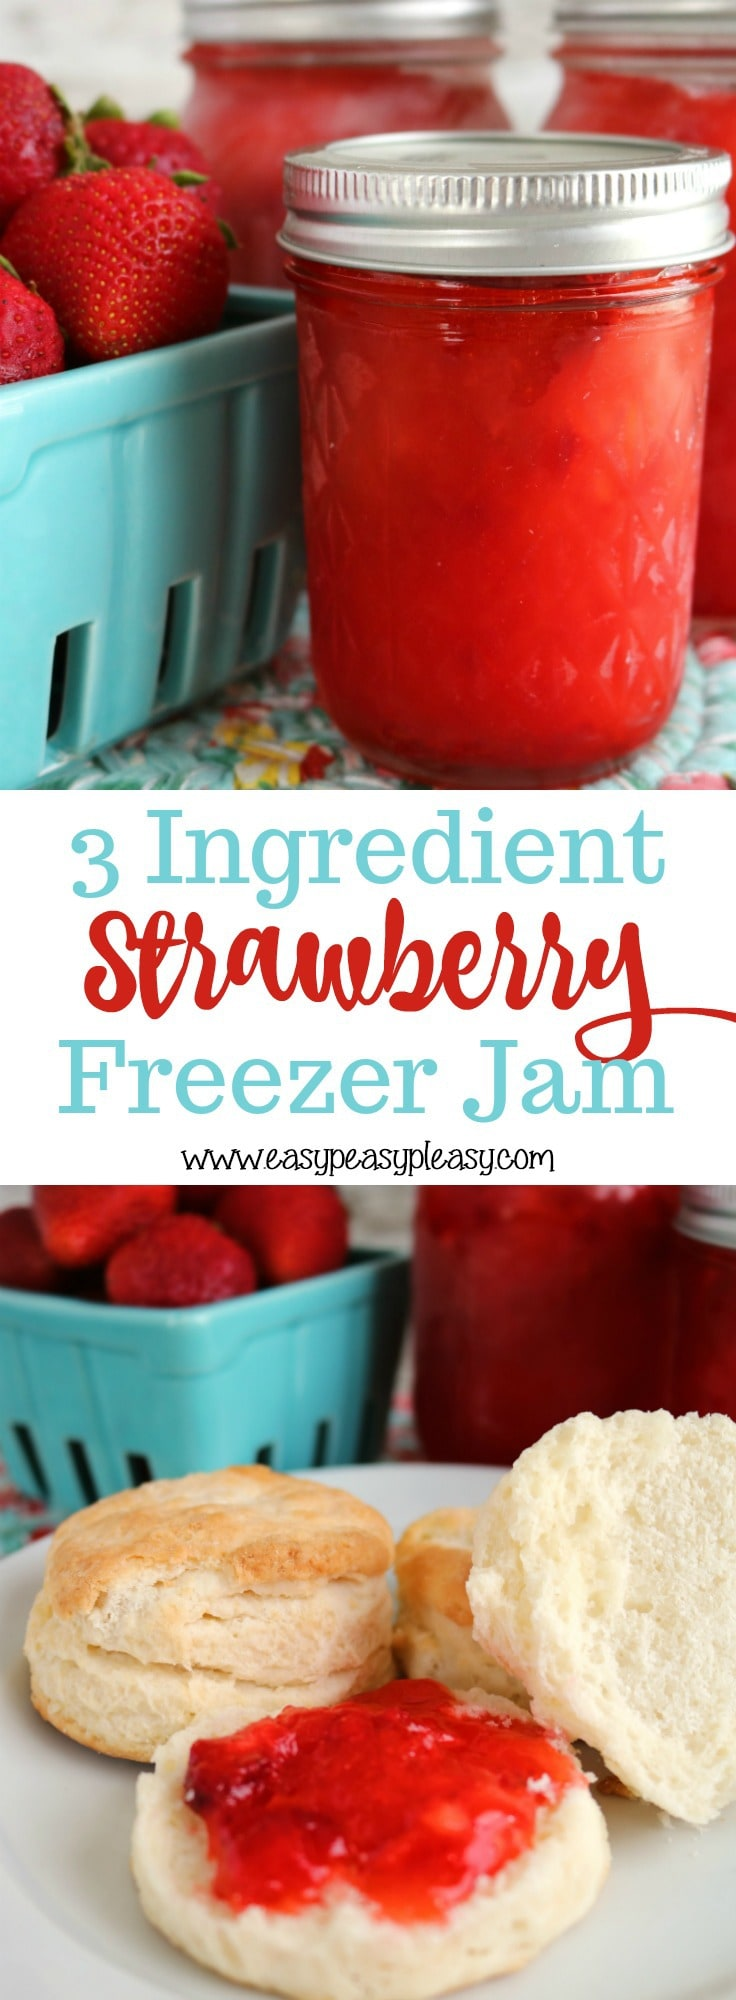 Check out this easy 3 Ingredient Strawberry Freezer Jam recipe. It's the perfect way to learn canning without a pressure cooker. Plus you'll find some great ways to use up that freezer jam.